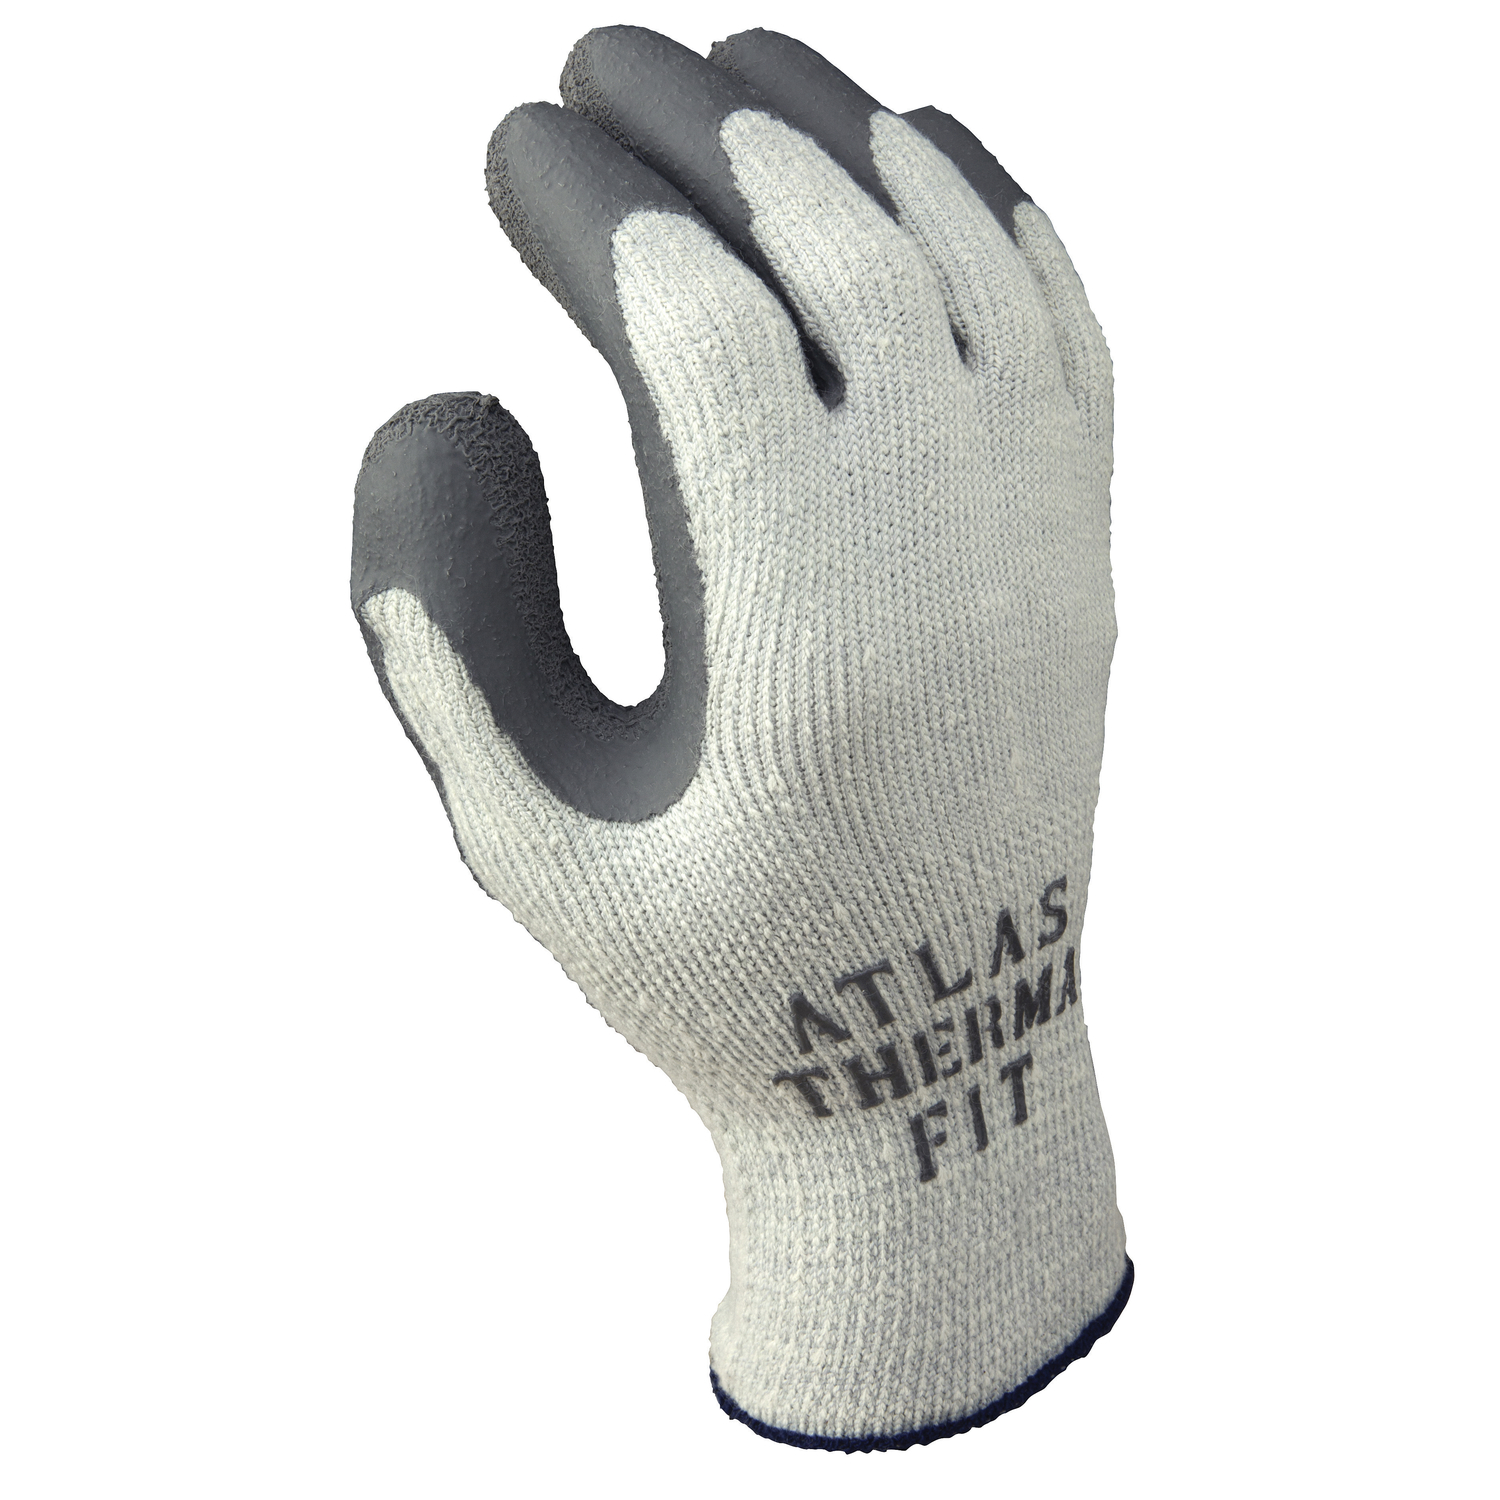 Atlas  Therma Fit  Unisex  Indoor/Outdoor  Rubber Latex  Cold Weather  Work Gloves  XL  Gray